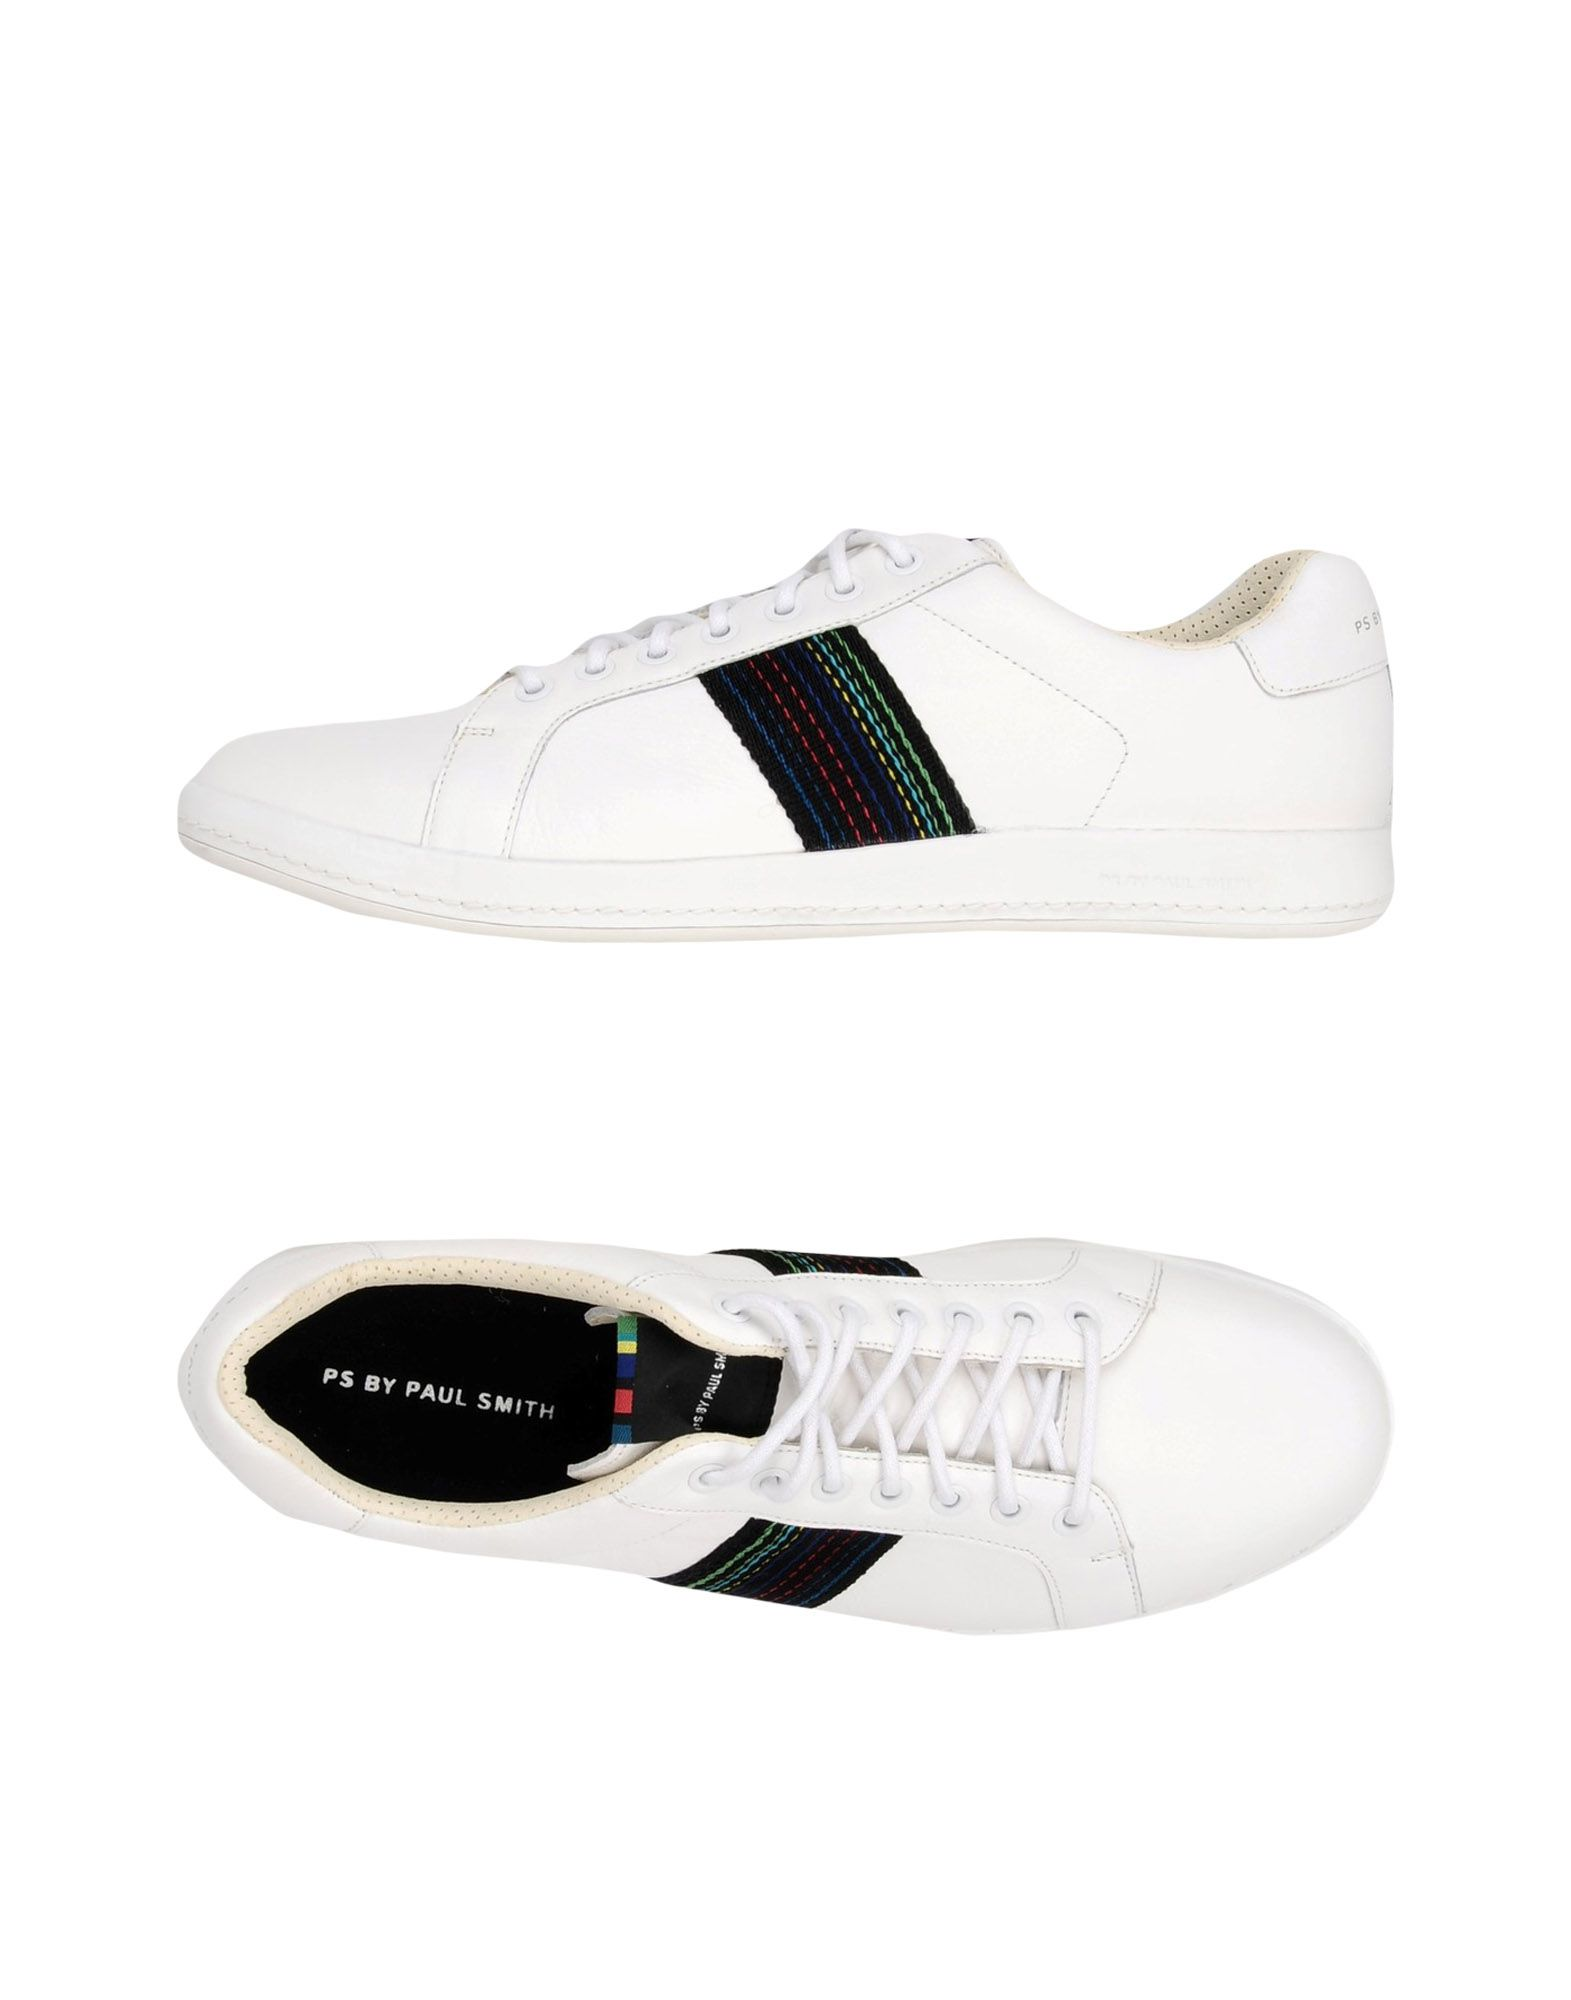 Baskets Ps Paul Smith Mens chaussures Lapin blanc - Homme - baskets Ps Paul Smith   - 11312182EW